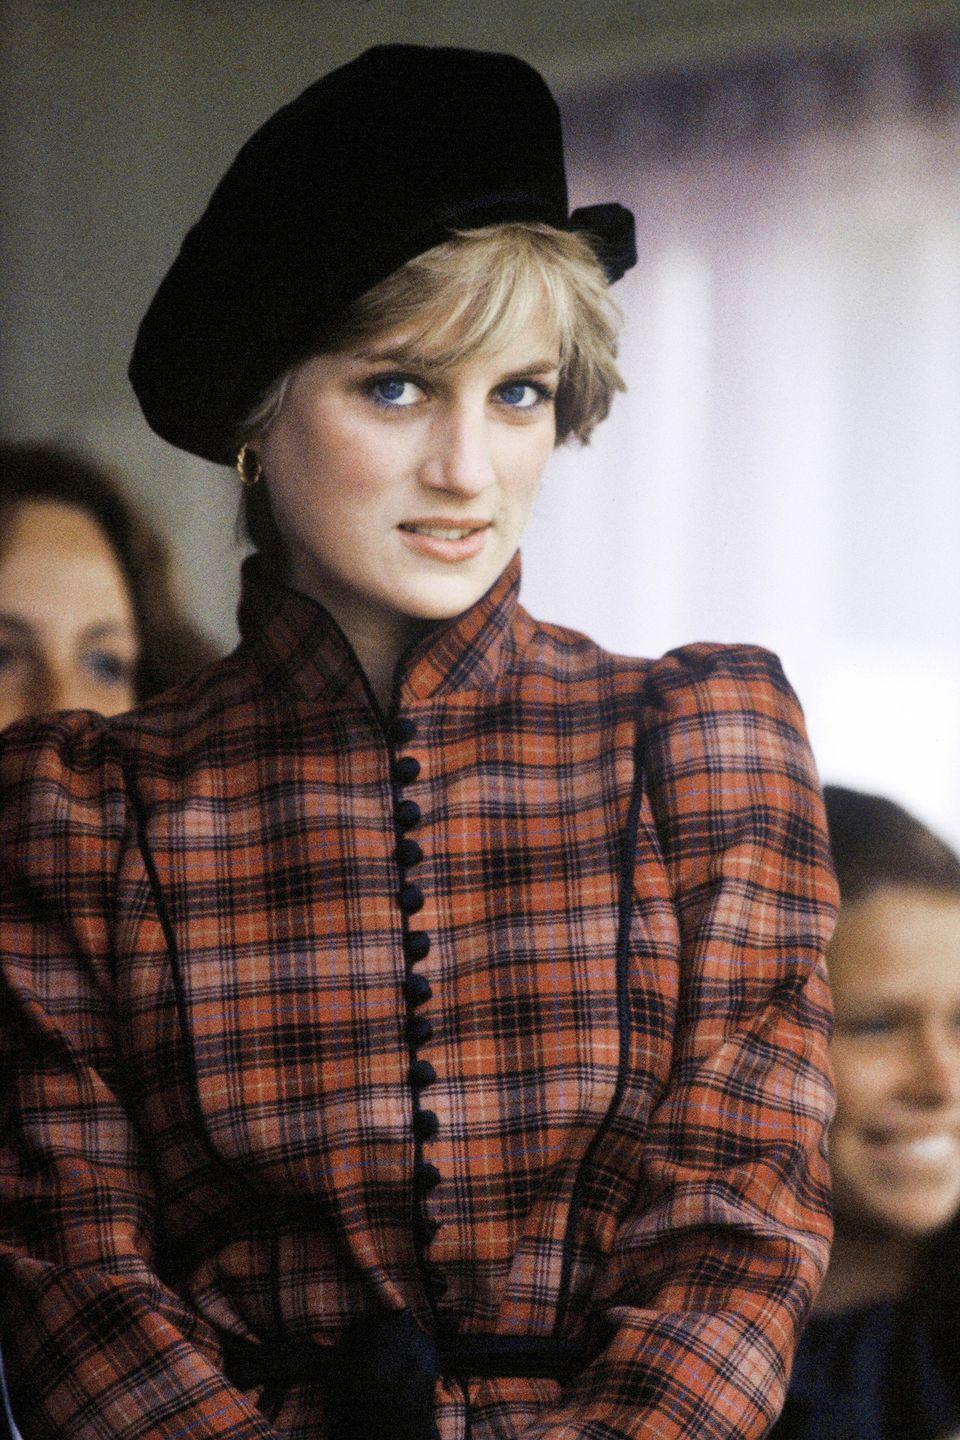 <p>But nobody wore plaid better than Princess Diana. She's photographed here wearing plaid at the Braemar Highland Games in September 1982 in Scotland.</p>